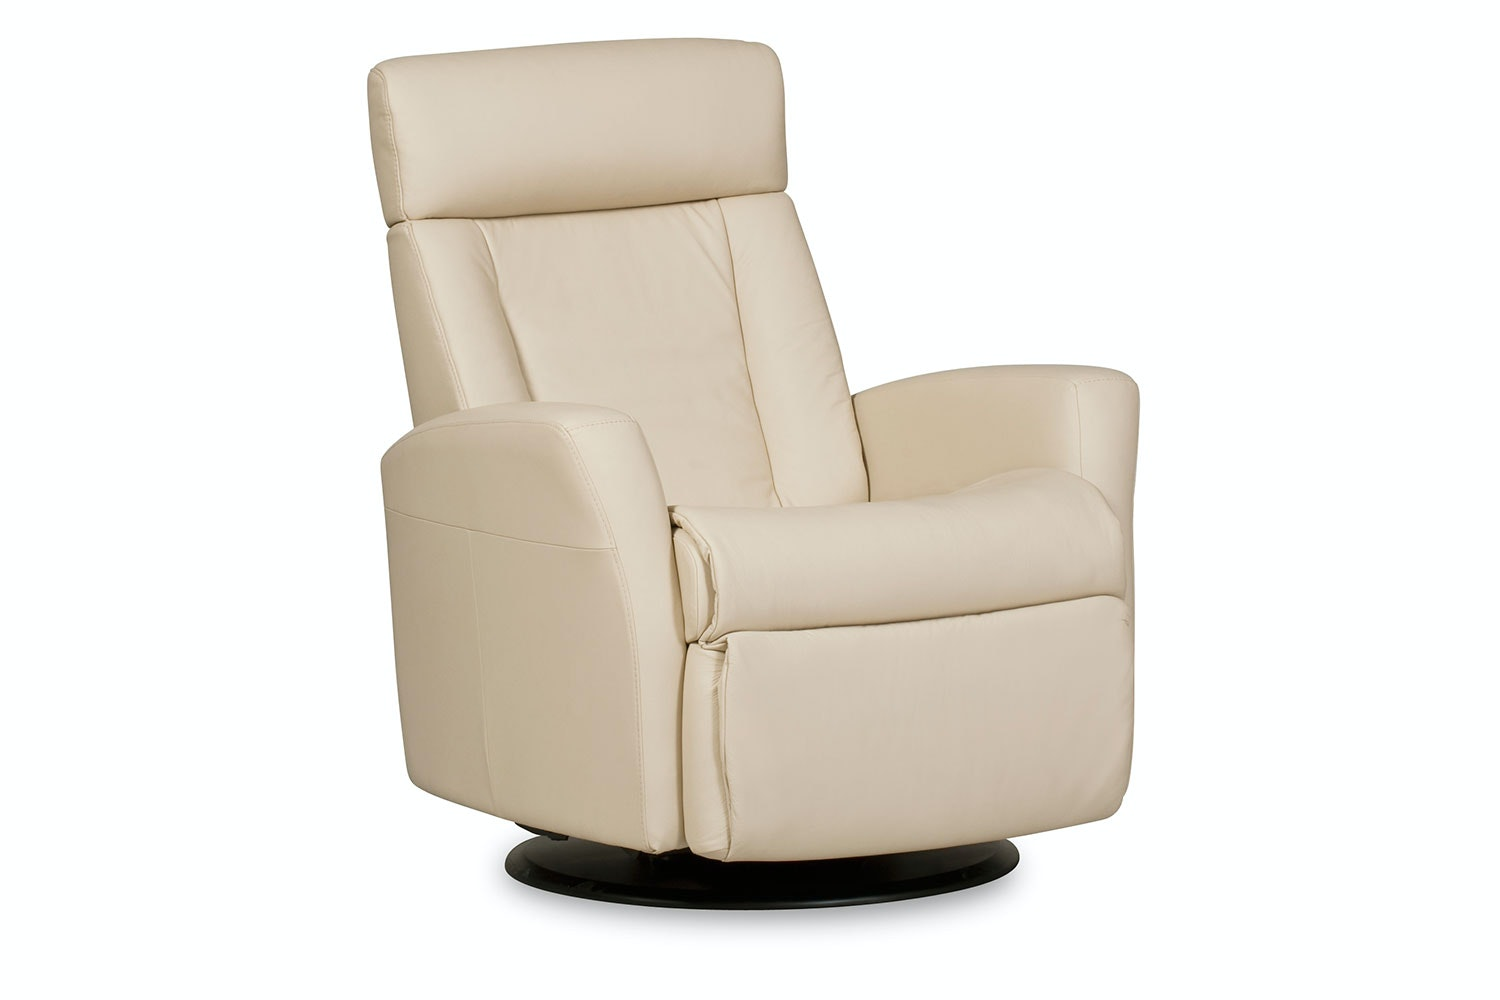 Lotus Recliner Chair Leather- Standard - Trend - IMG